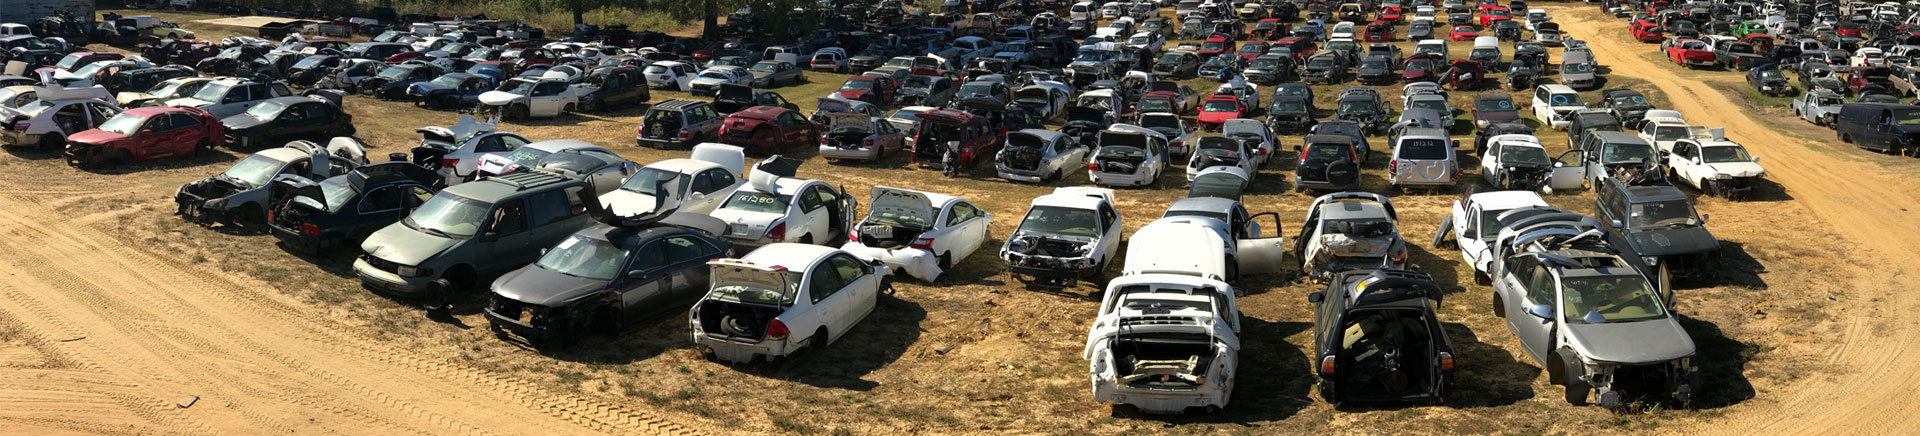 Sell Your Junk Car :: KARS - Keith Auto Recyclers | Pontotoc, MS